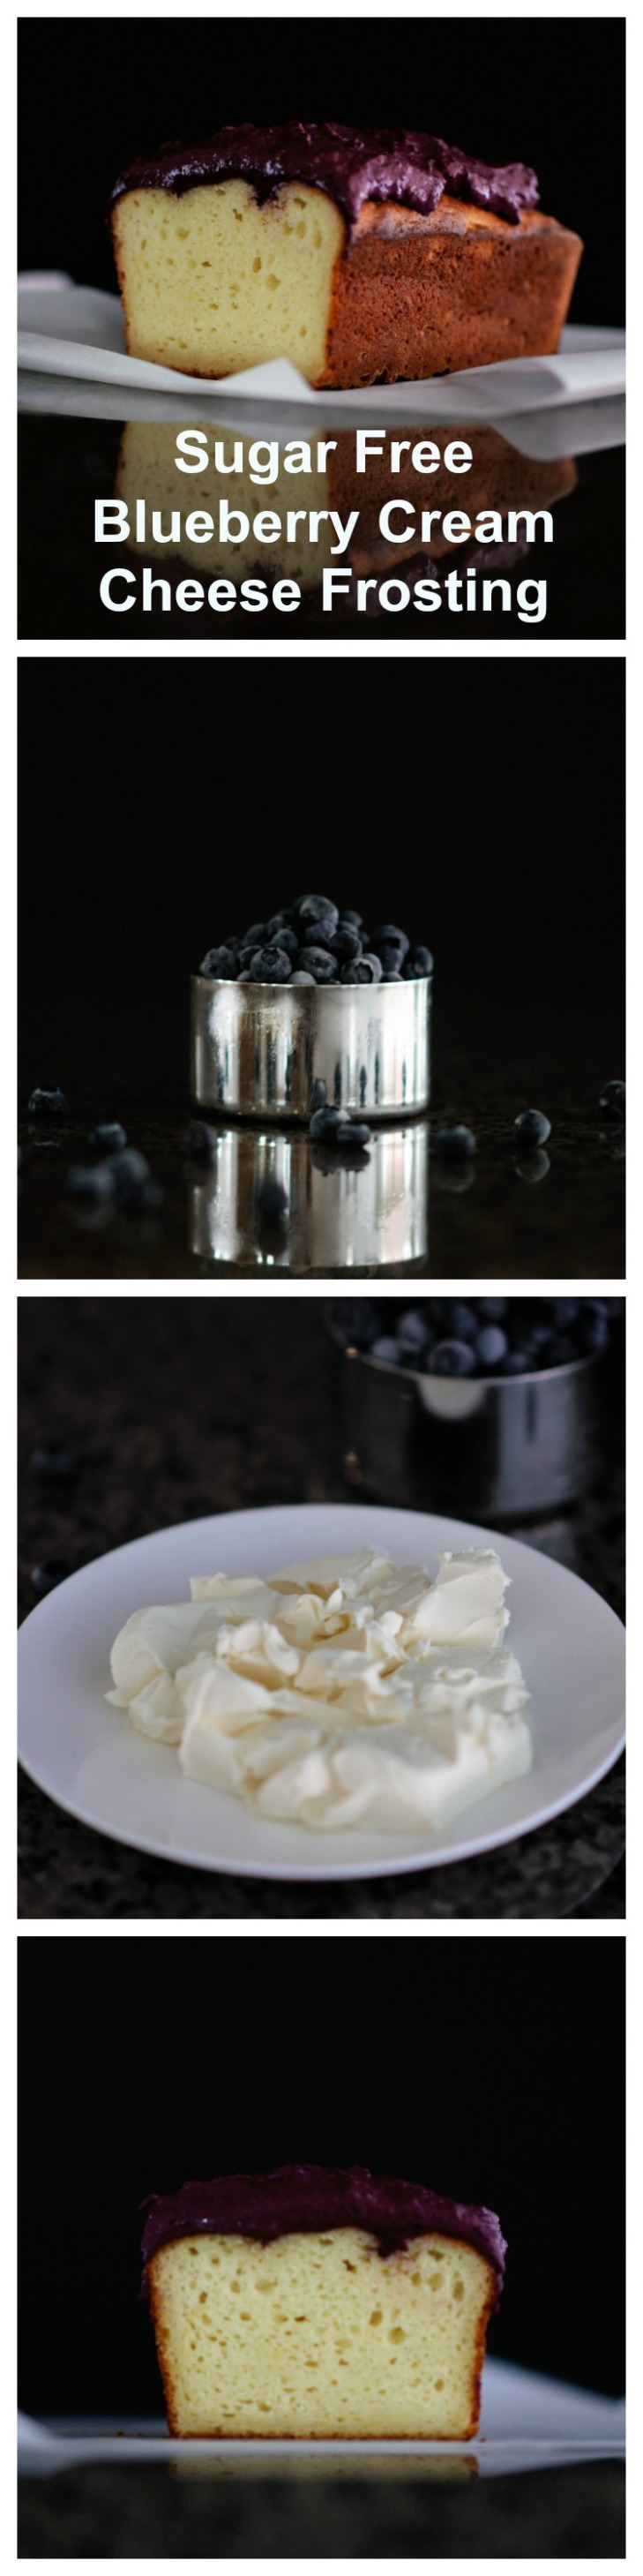 Sugar Free Blueberry Cream Cheese Frosting Collage